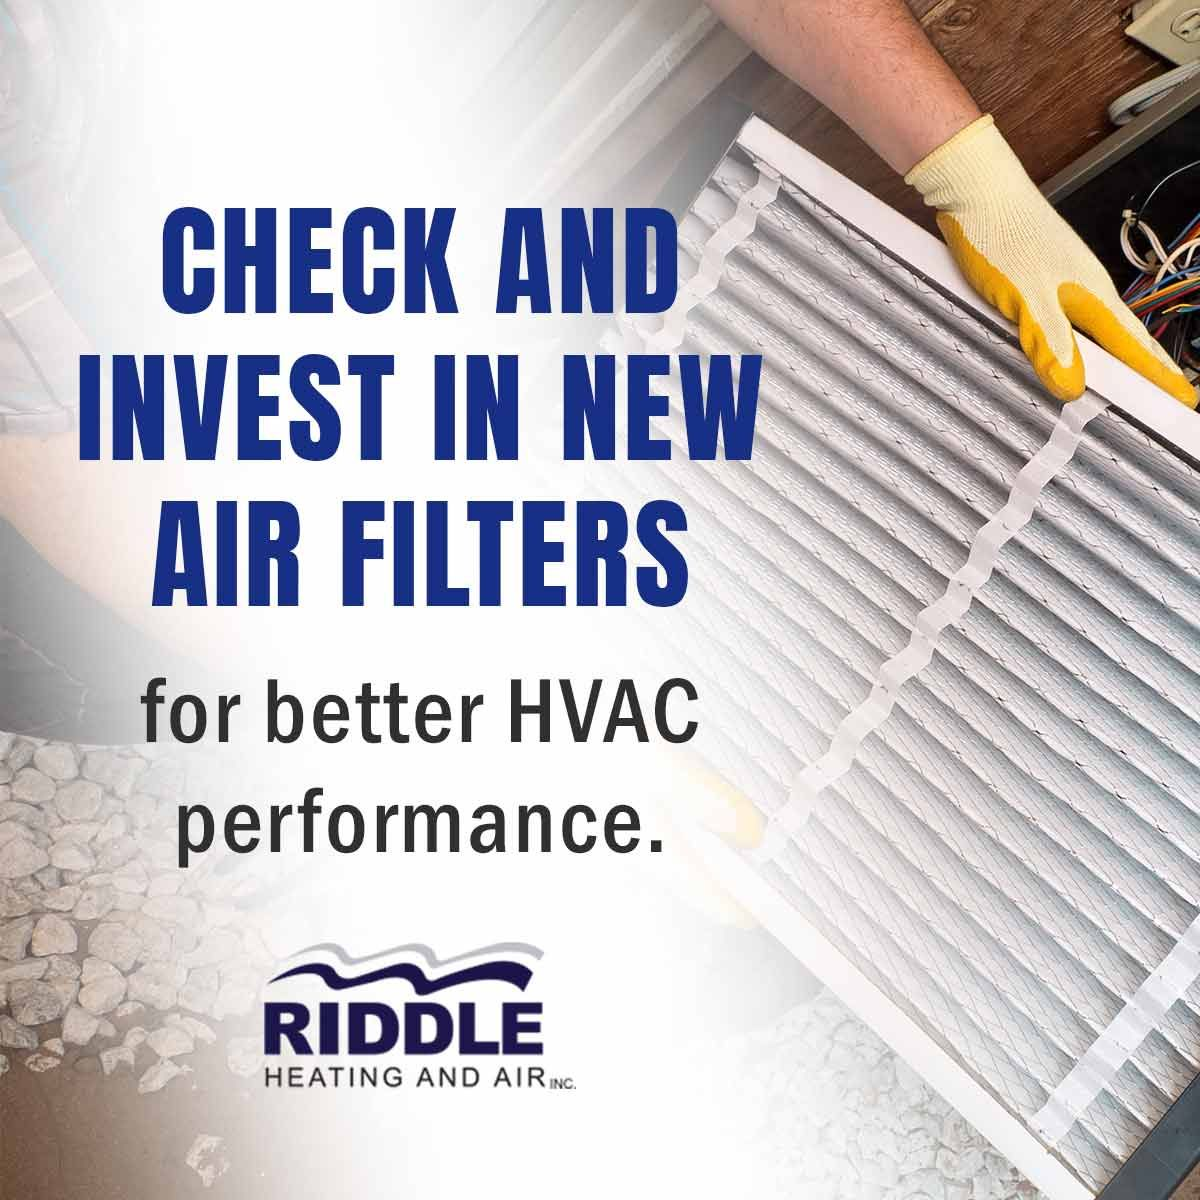 Air filter serves as your system's safeguard against